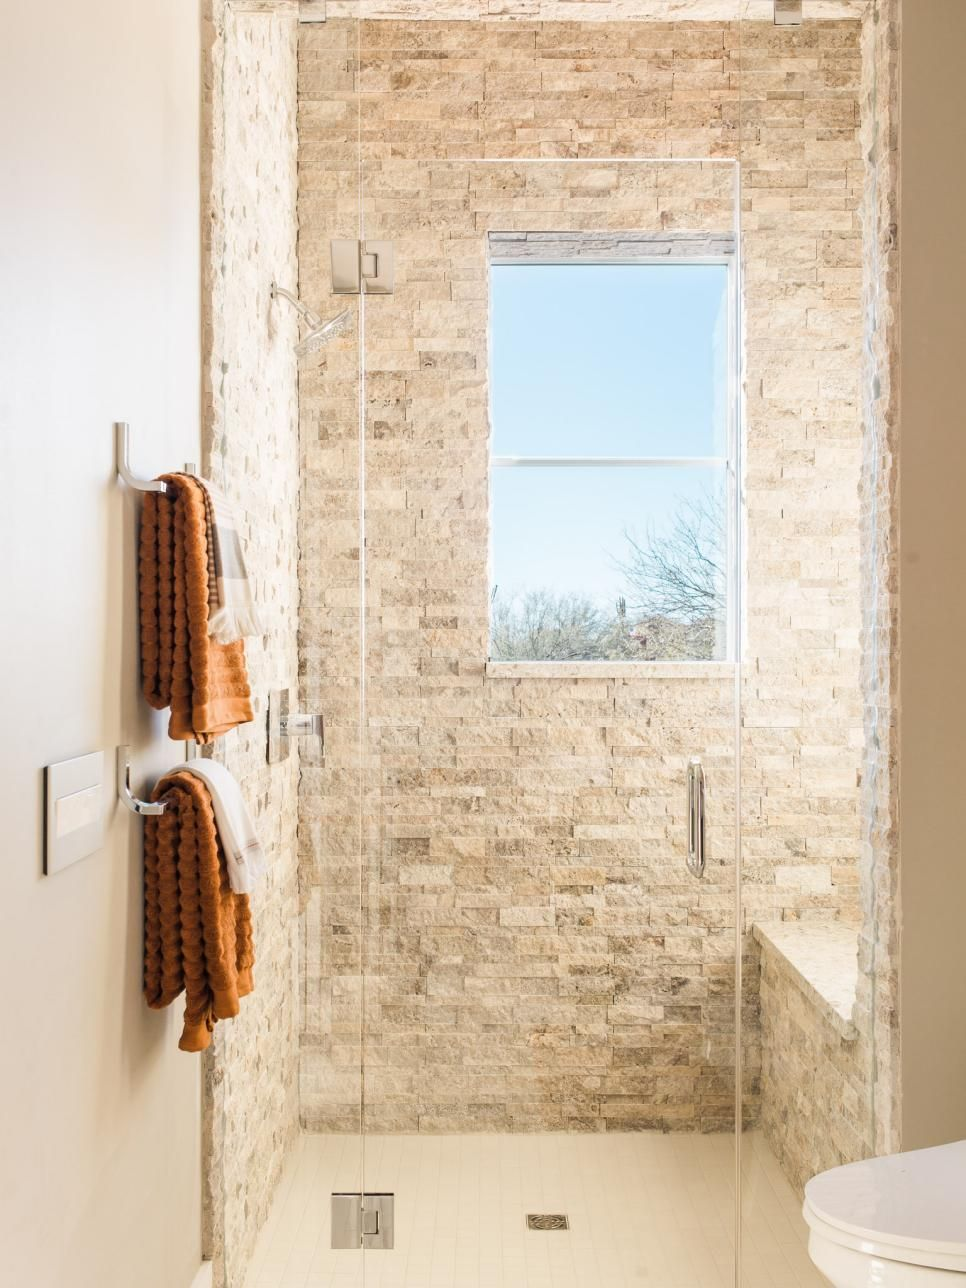 With A Rich Dark Wood Vanity And An Enticing Walk In Shower That